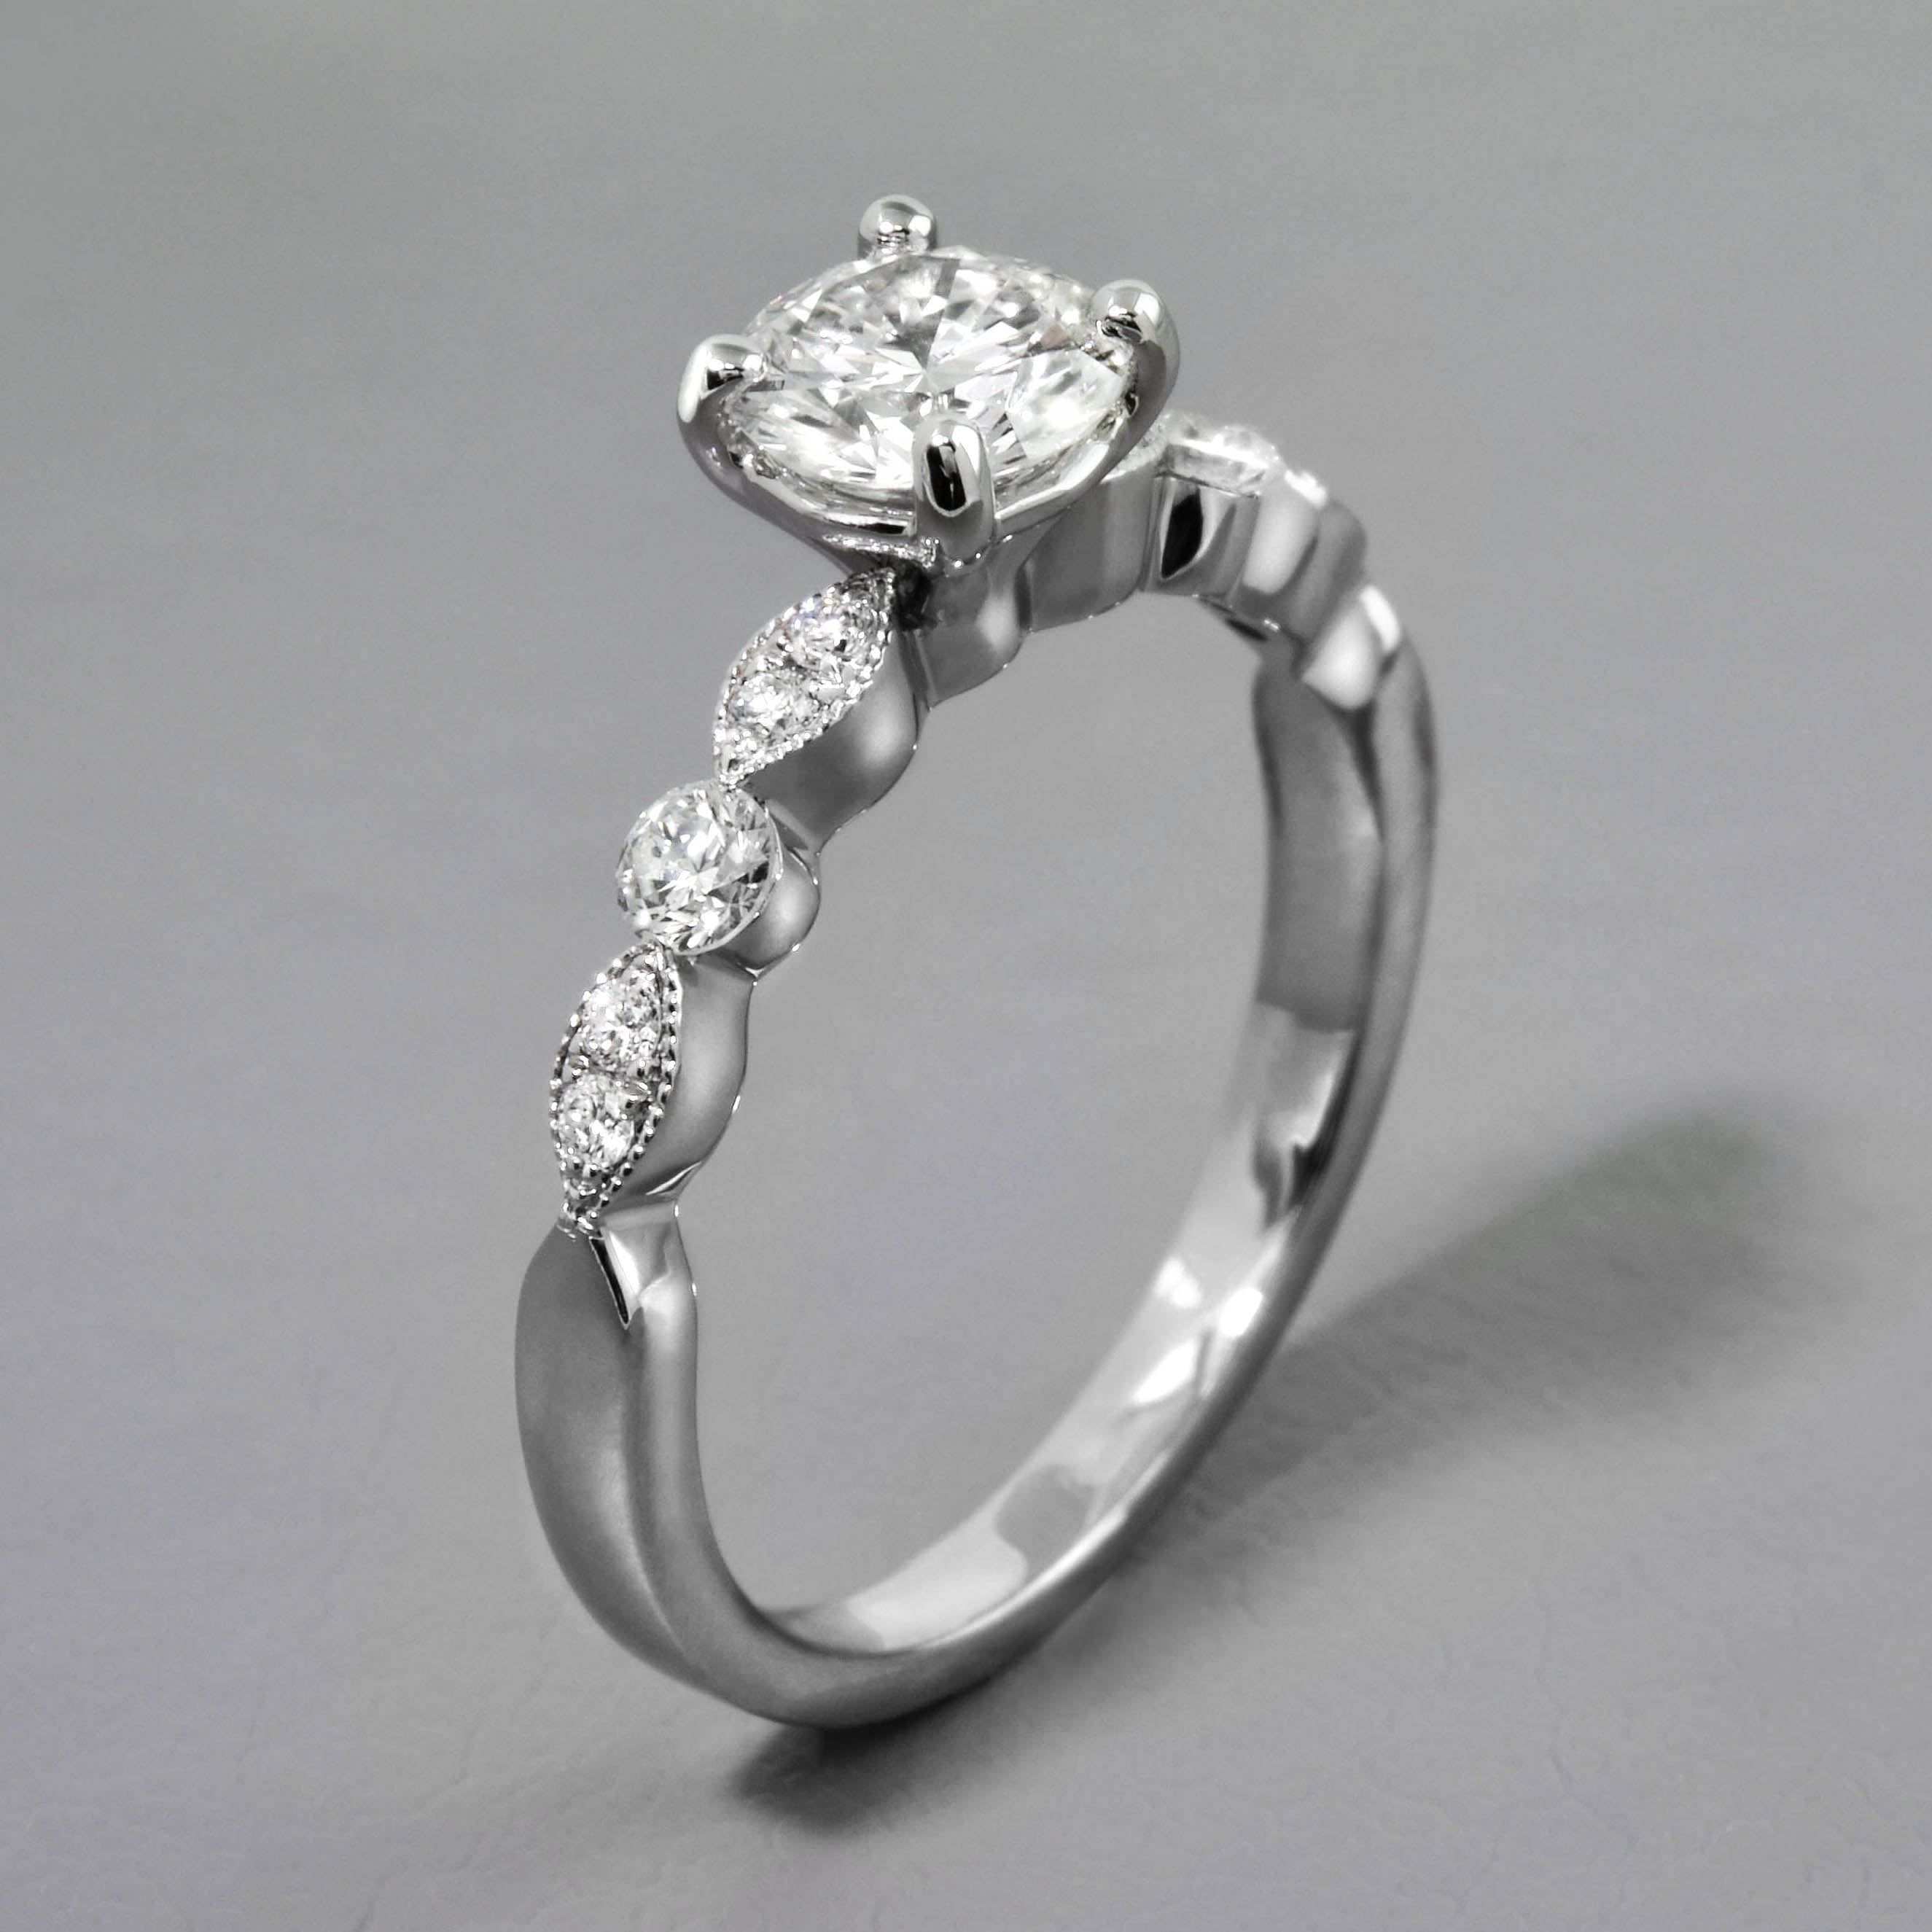 details ring solitaire rings metal products plante noam diamond carver pretty engagement with jewelers